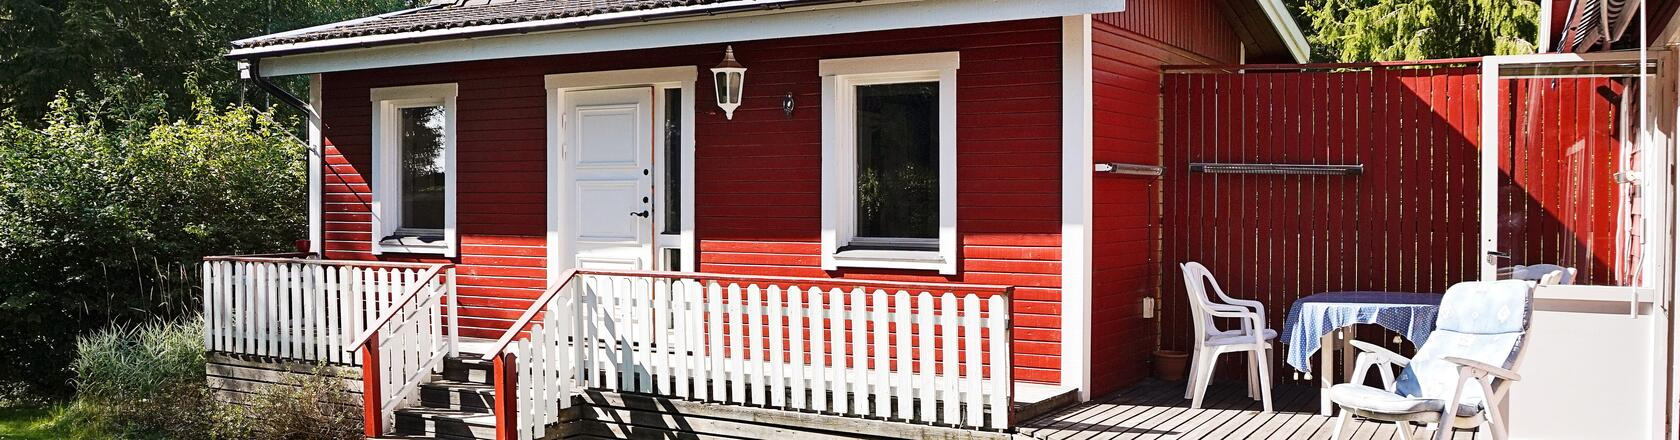 Uppsala in Sweden - Rent a holiday home  with DanCenter